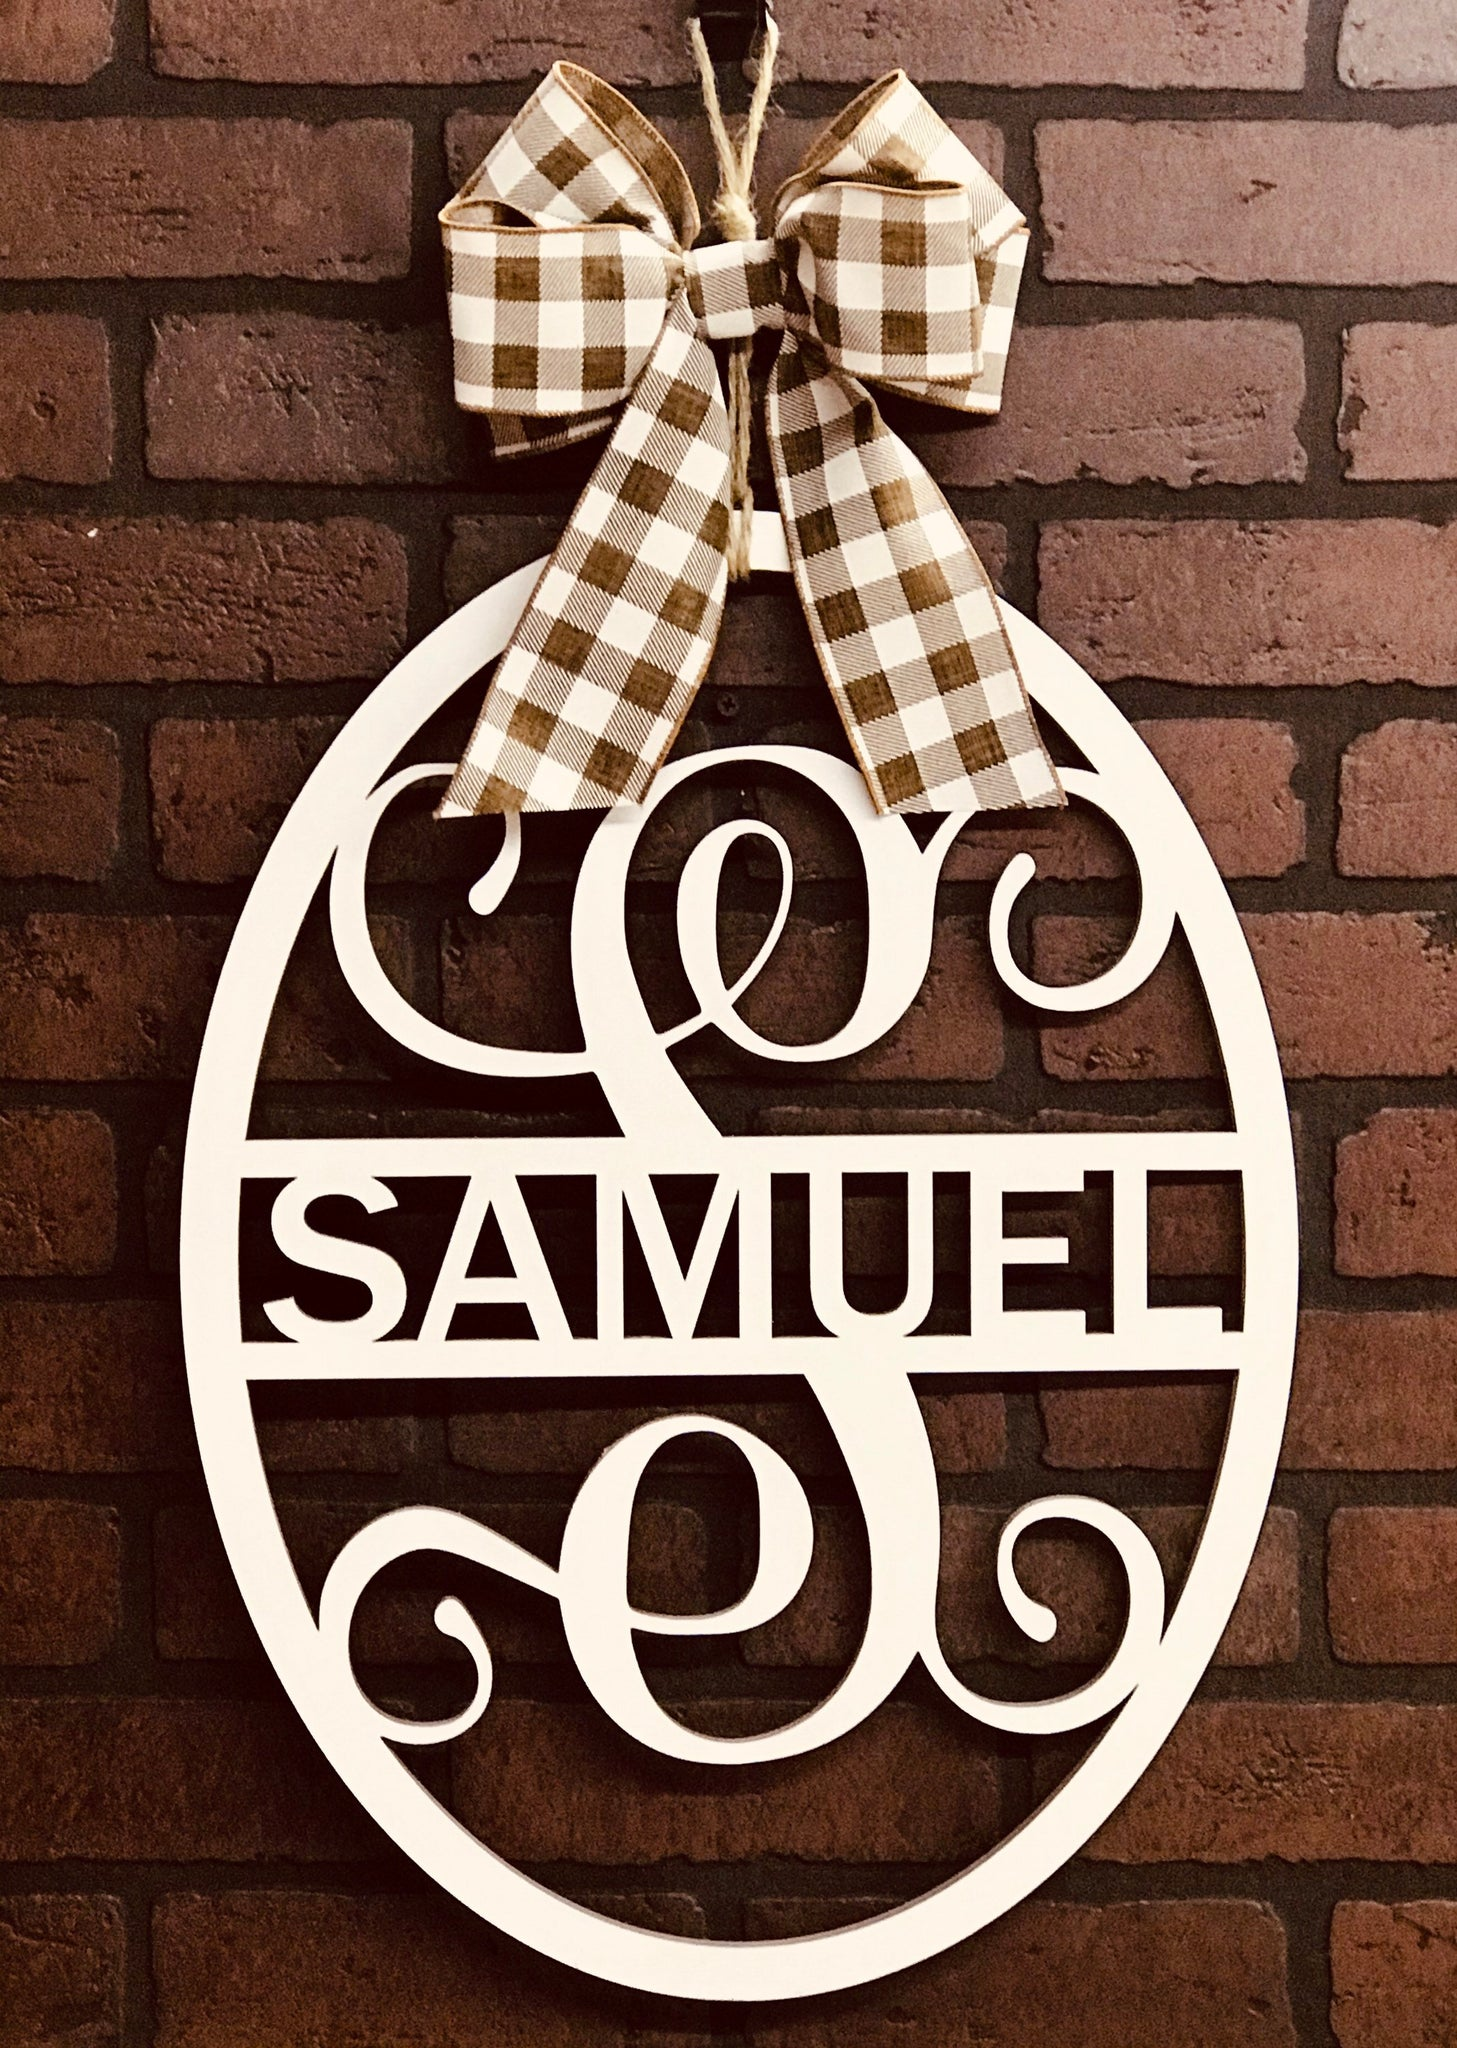 Last Name Door Hanger | Family Name Sign | Great Personalized Gift | Home Decor Wall Sign | White Wood Finish